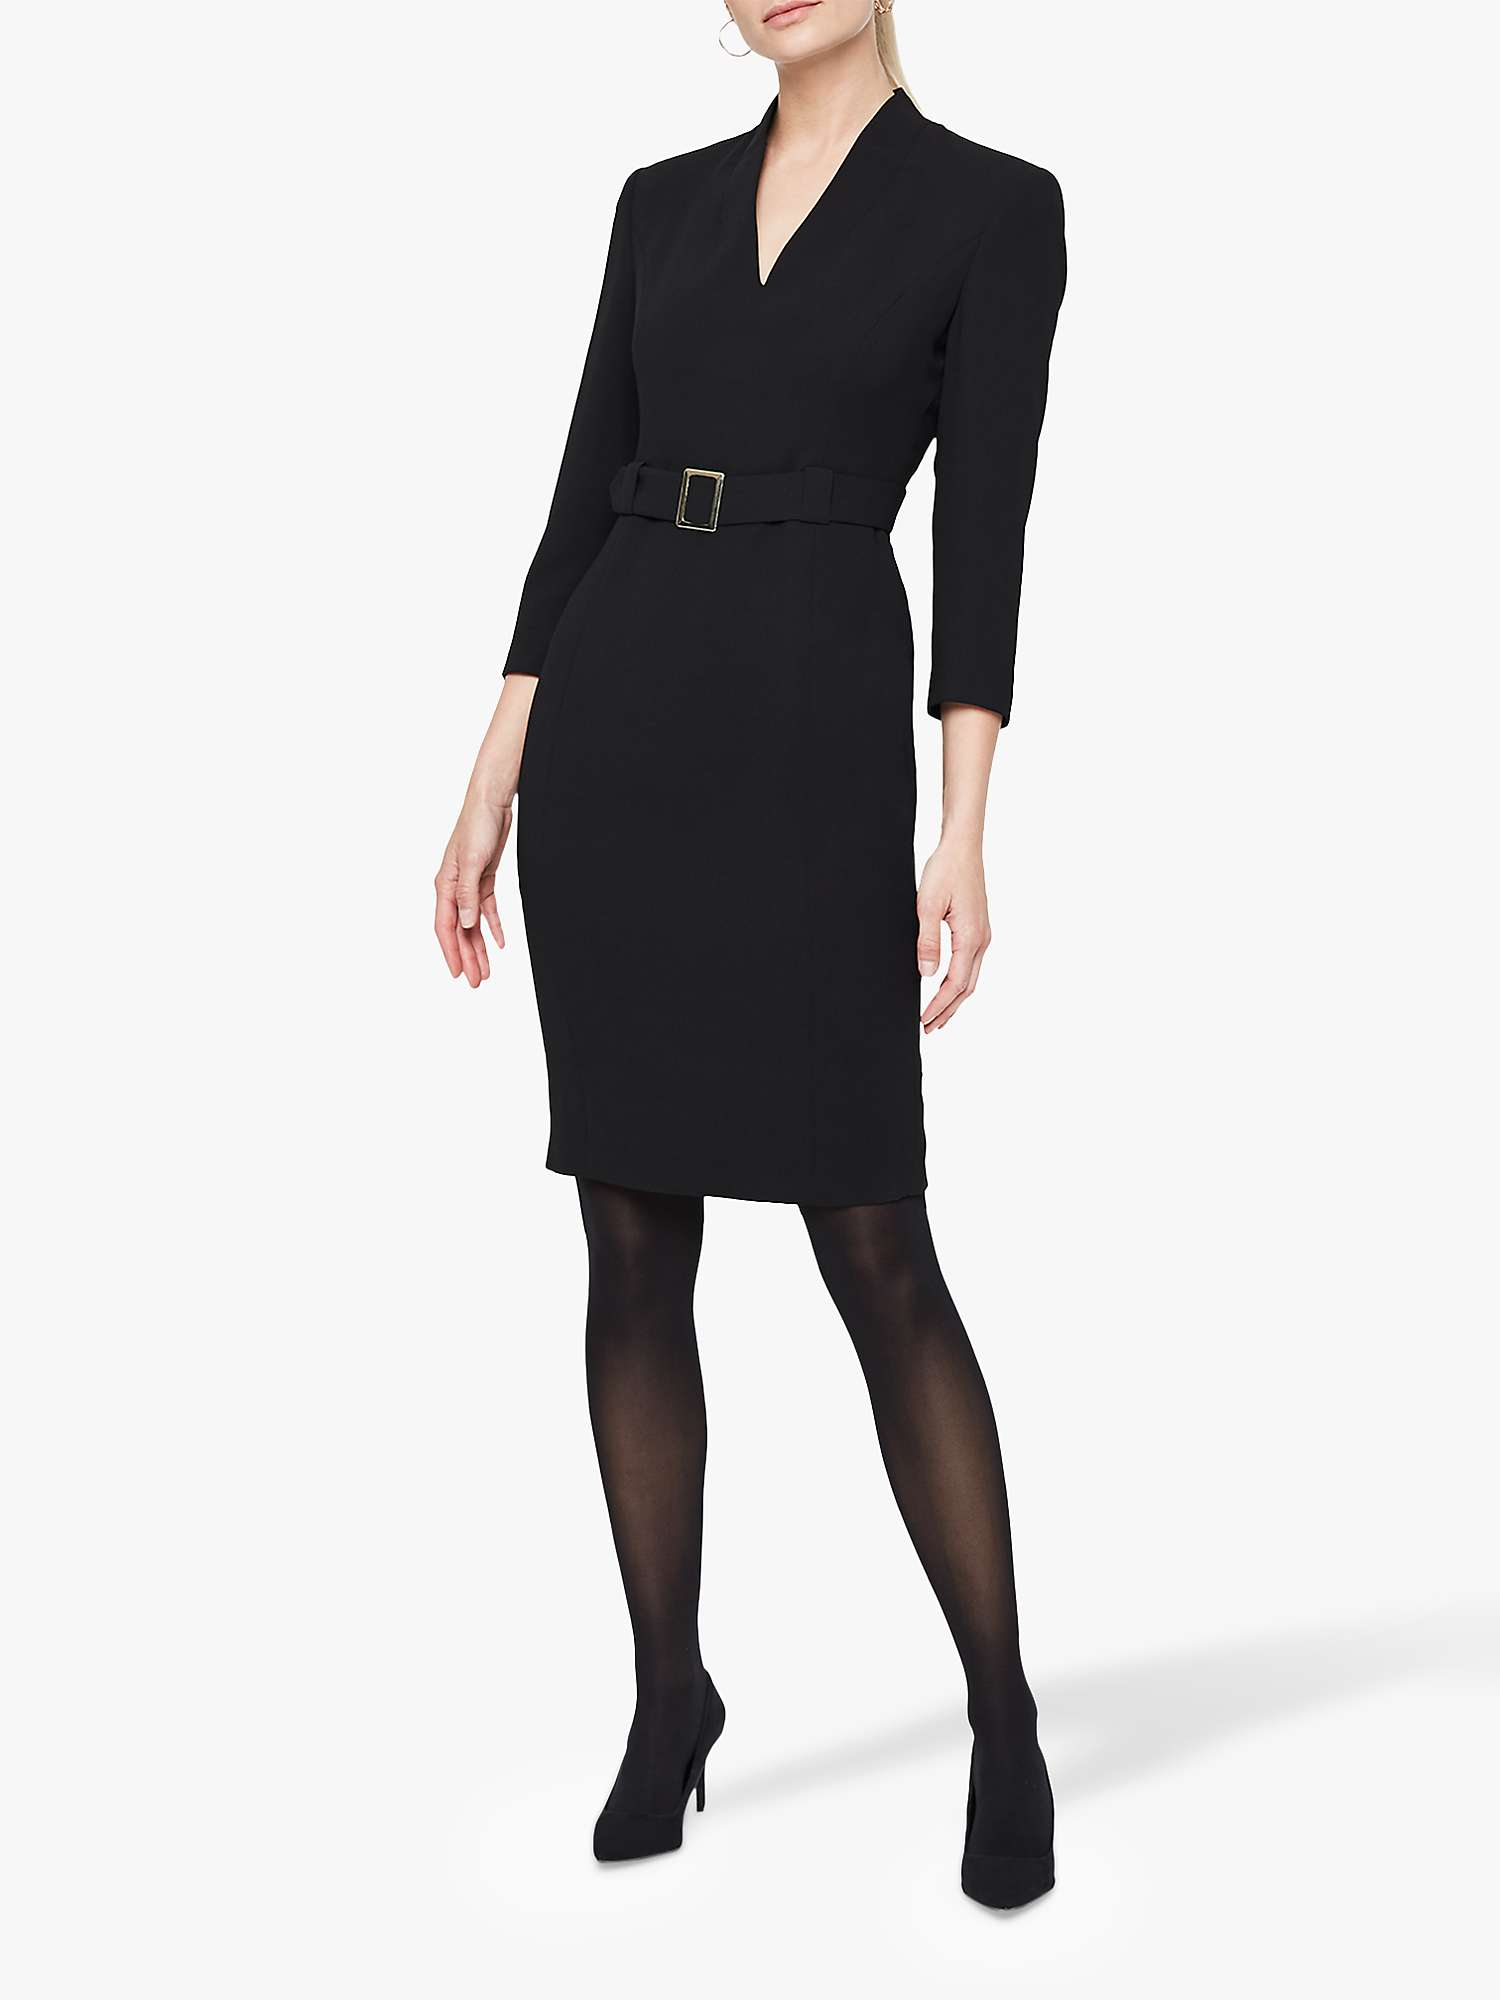 Damsel In A Dress Lydia City Suit Dress, Black by John Lewis